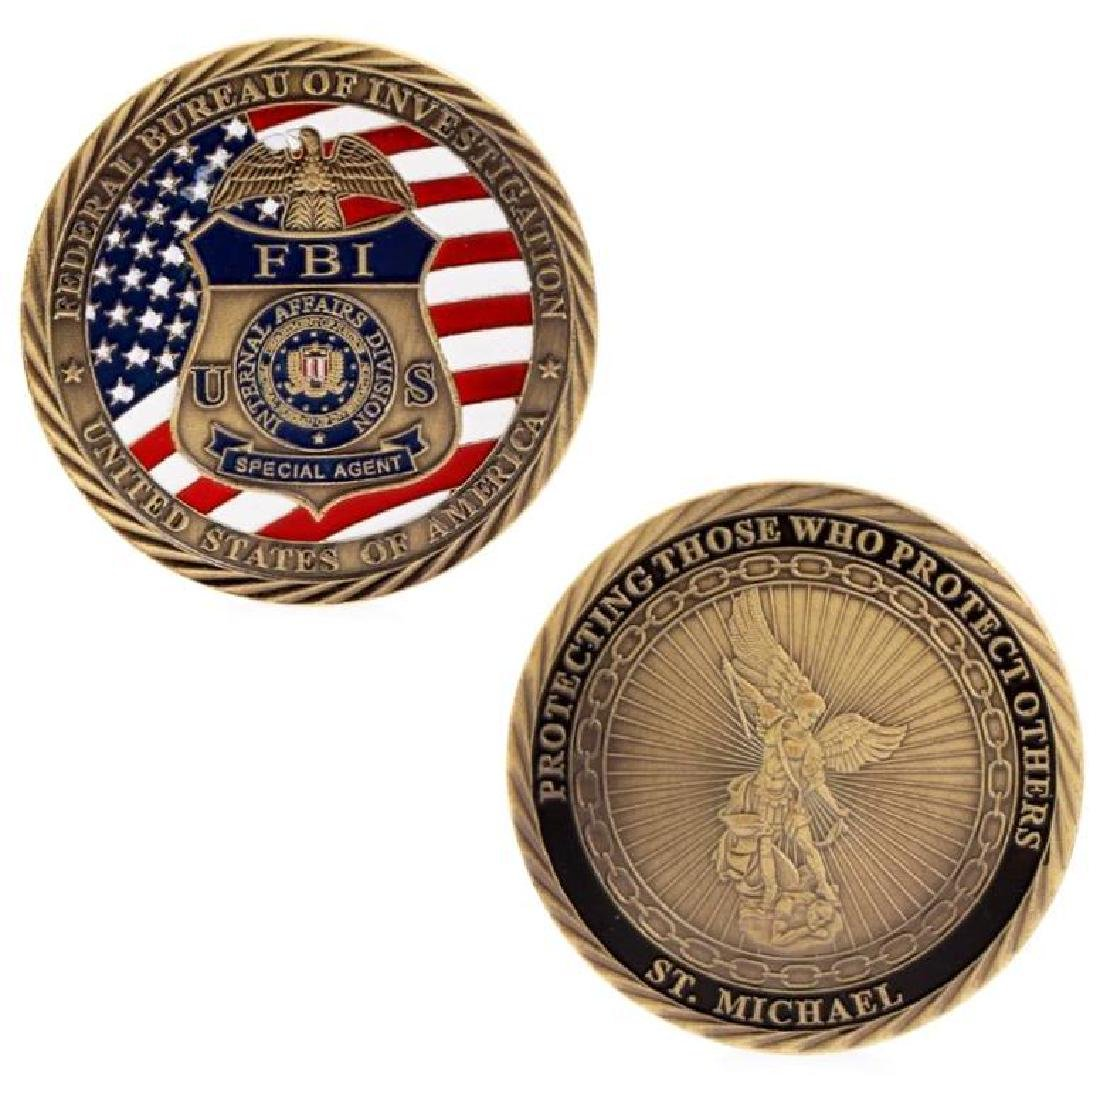 USA FBI Special Agent Gold Clad Challenge Coin